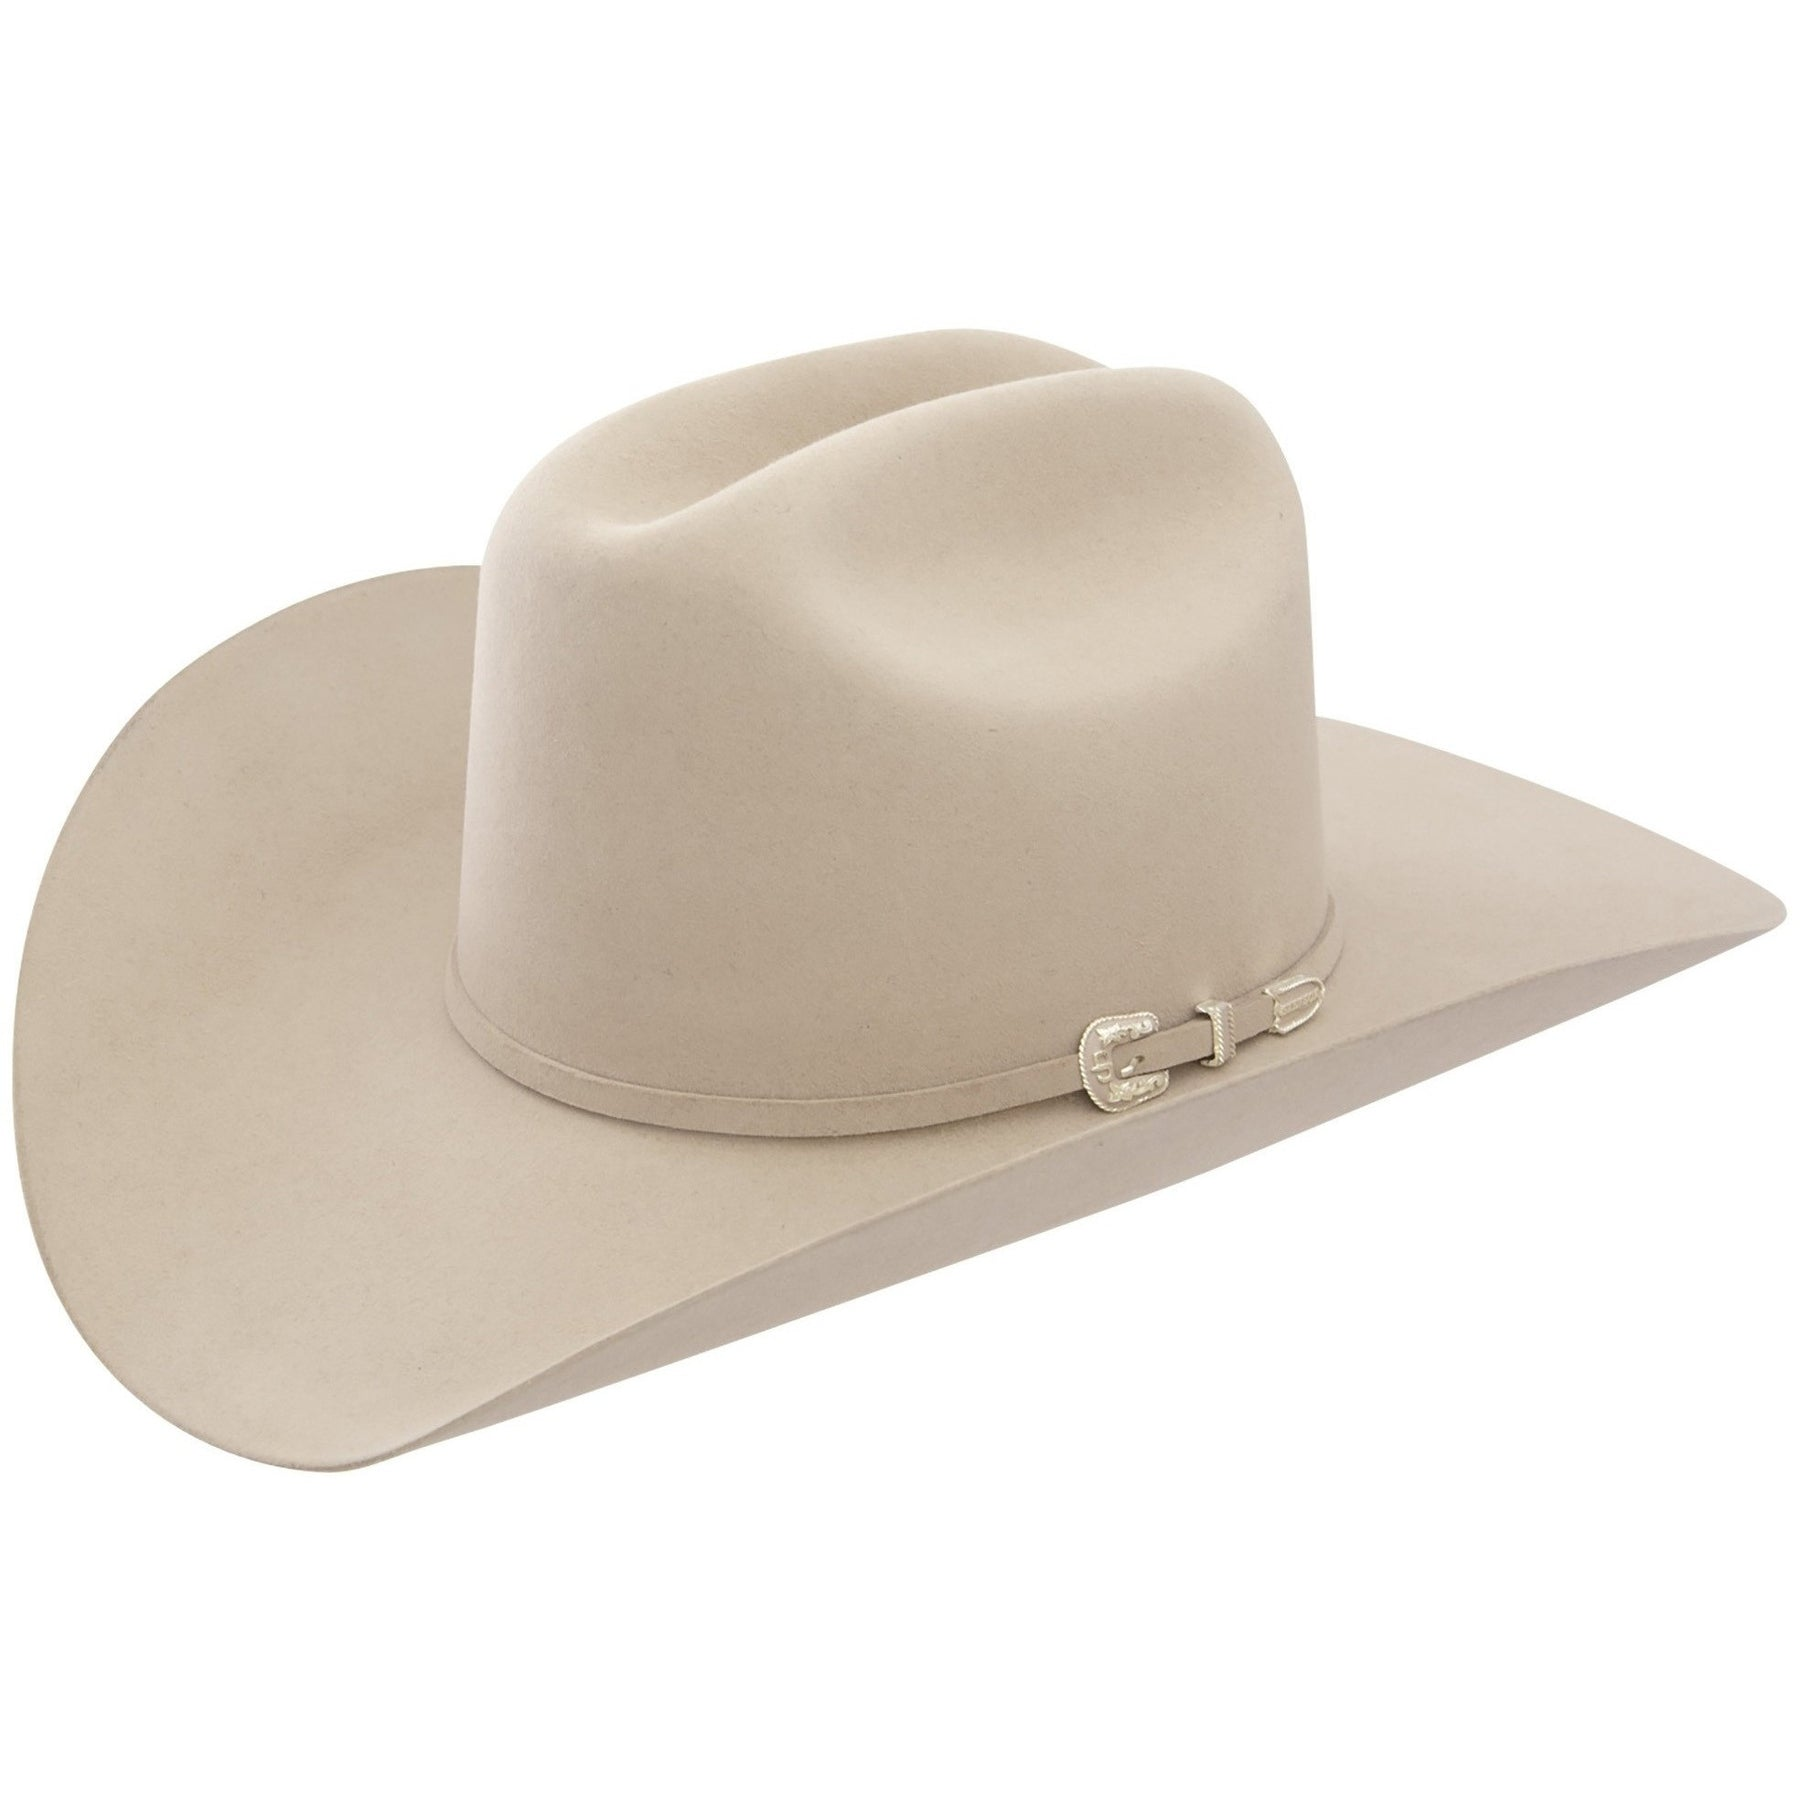 stetson skyline 6x felt hat silver belly color cowboy hats new ... 6ff28e03ff4